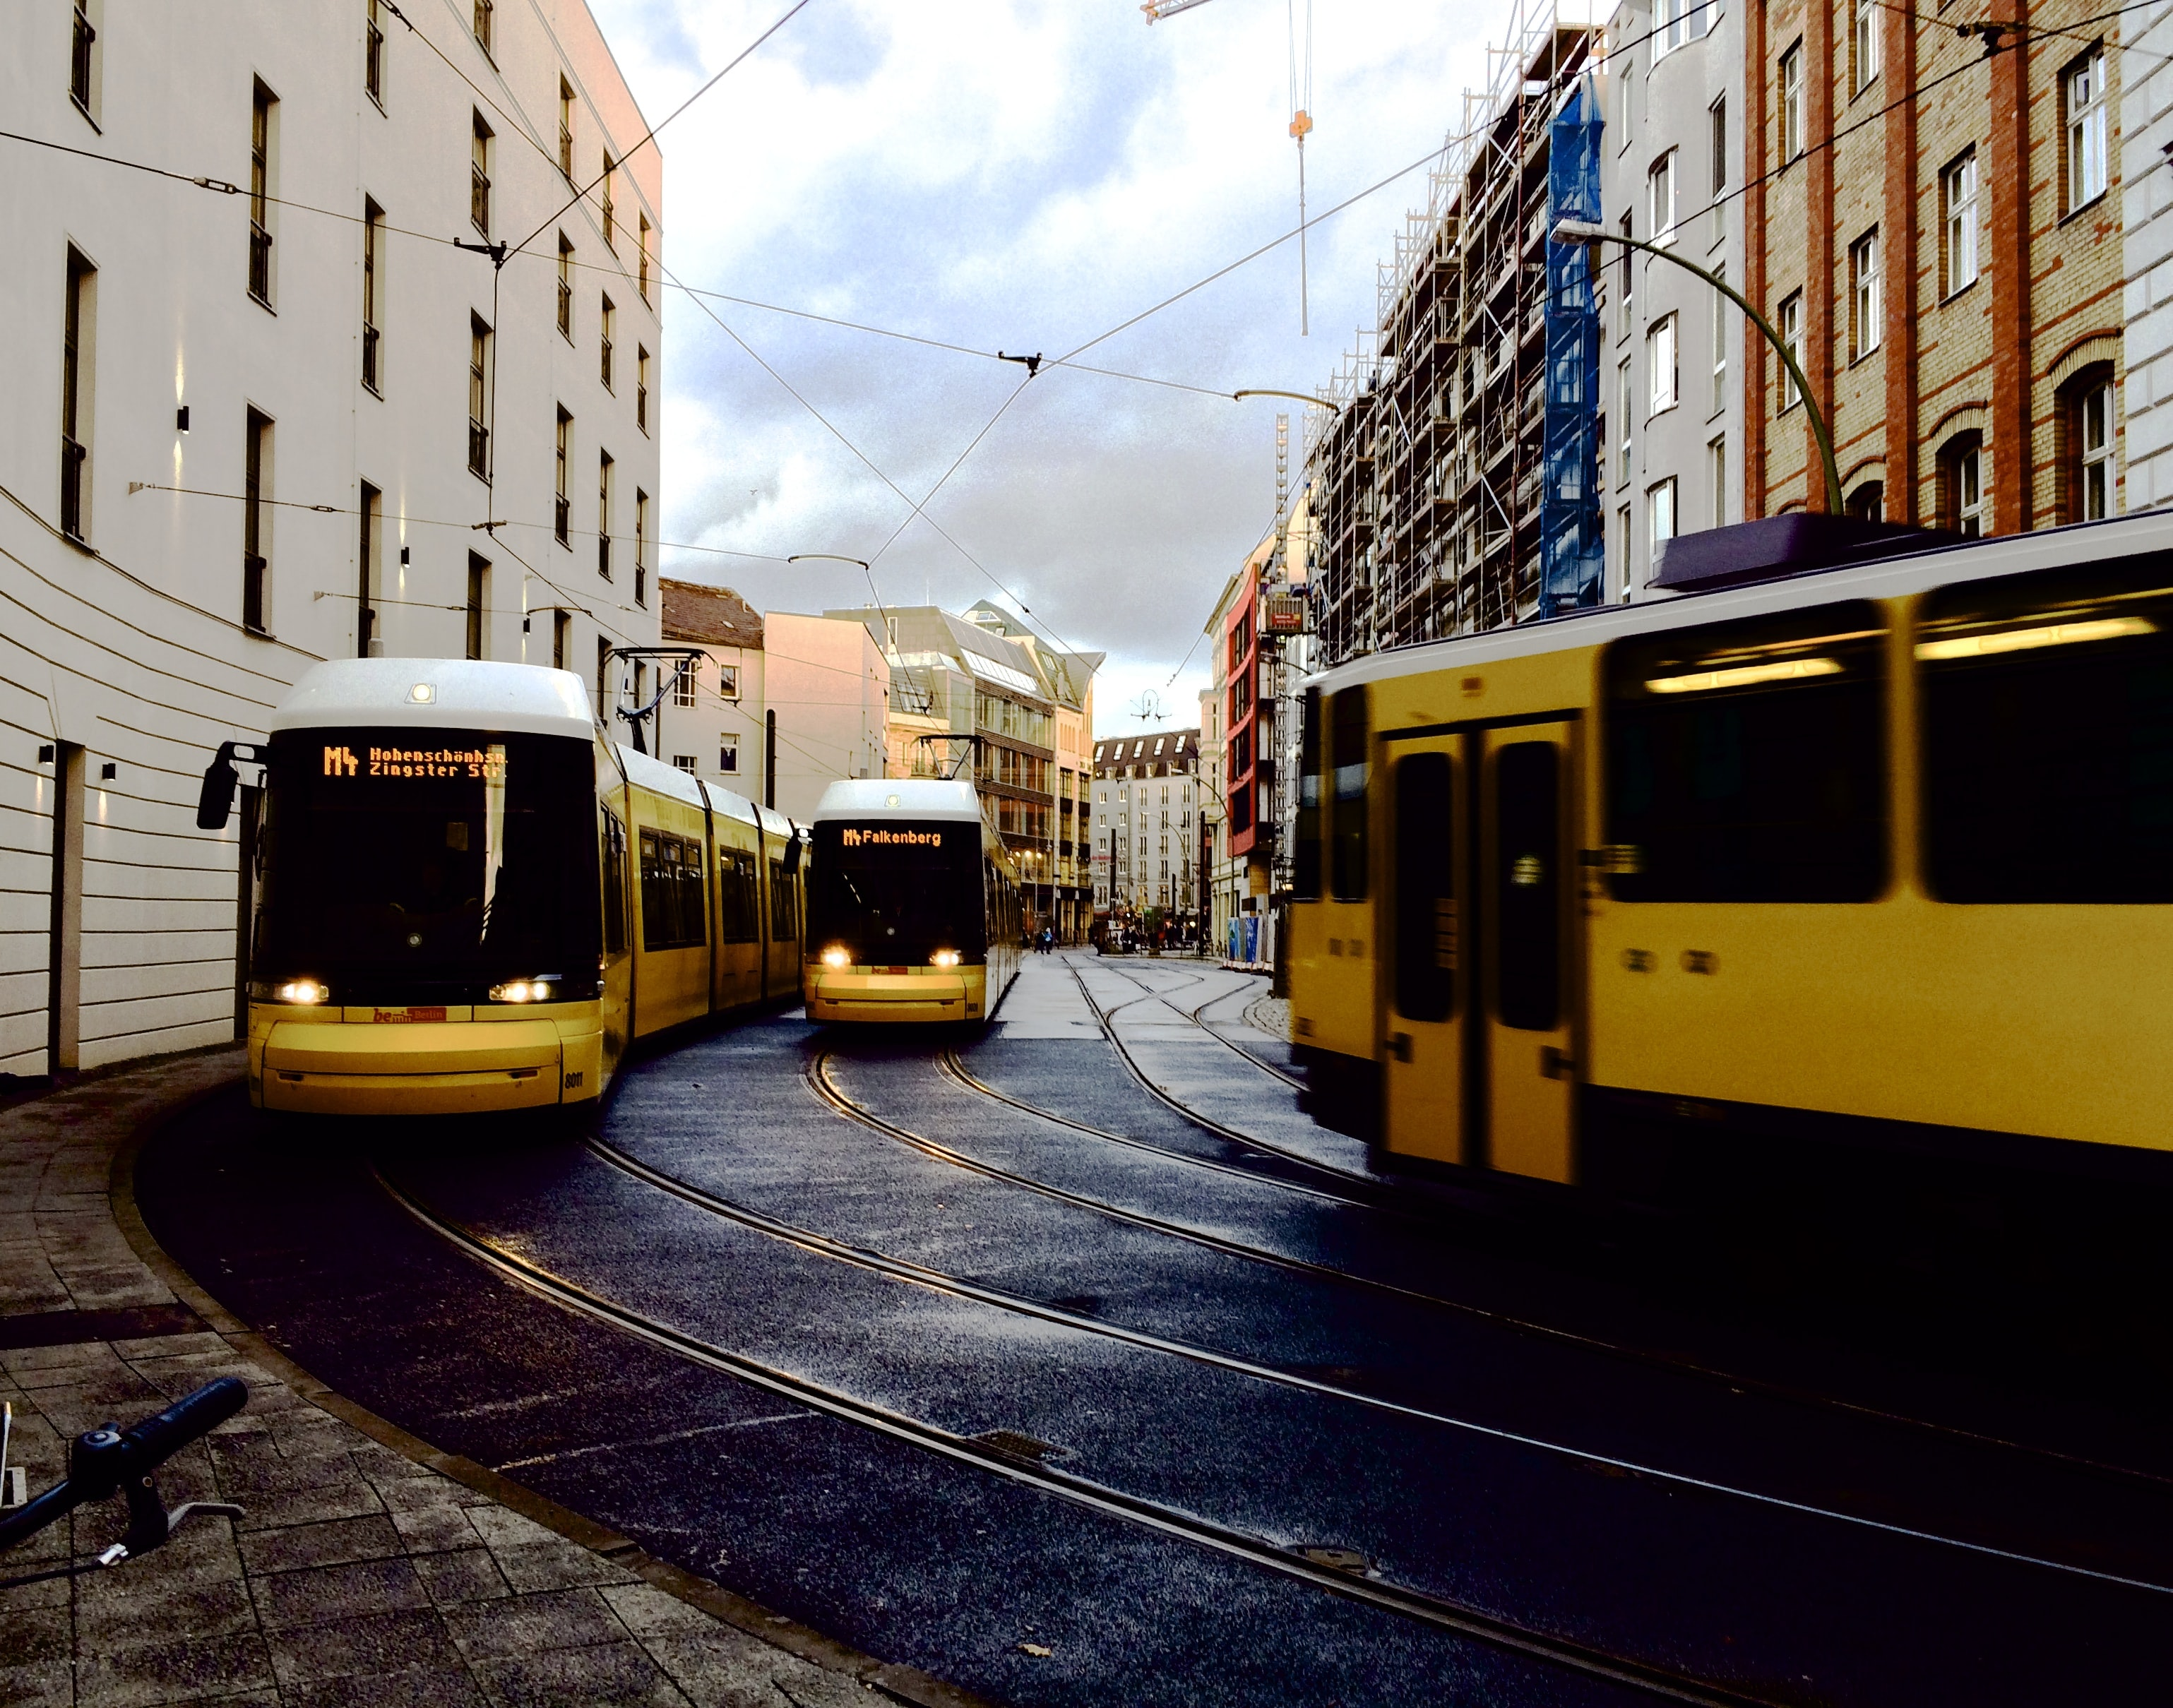 yellow city buses between buildings during daytime